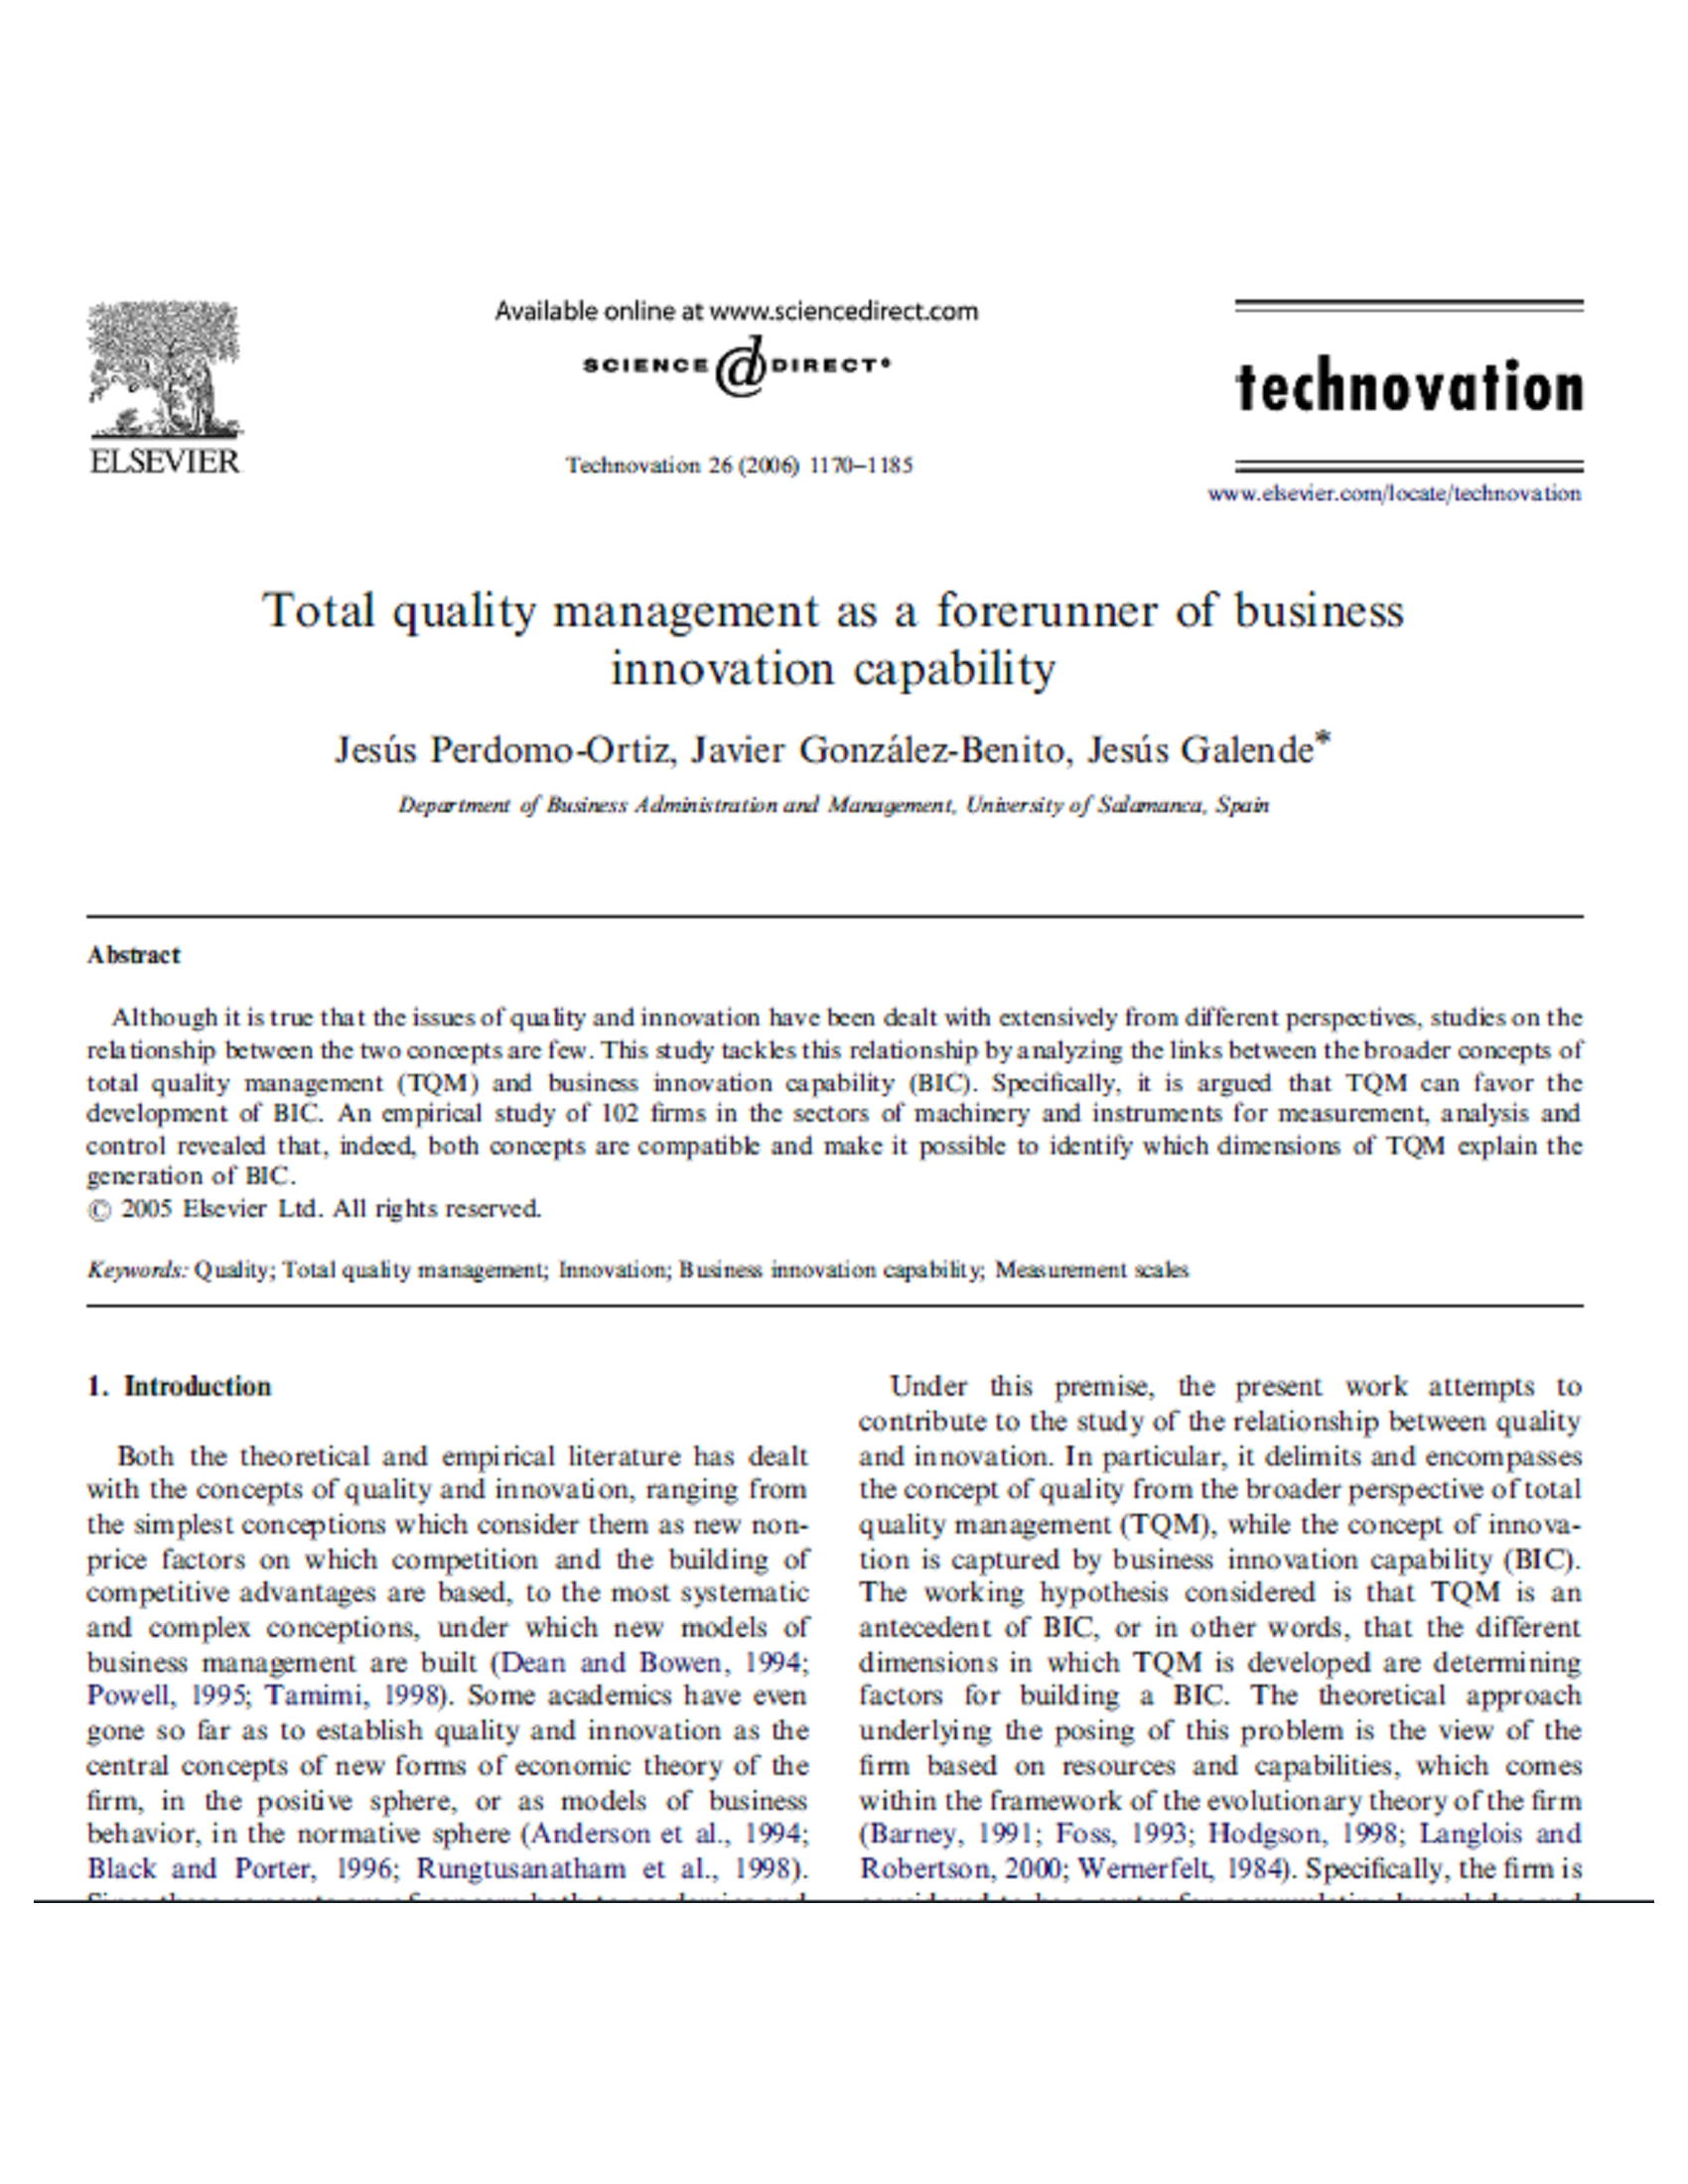 Total quality management as a forerunner of businessinnovation capability 16